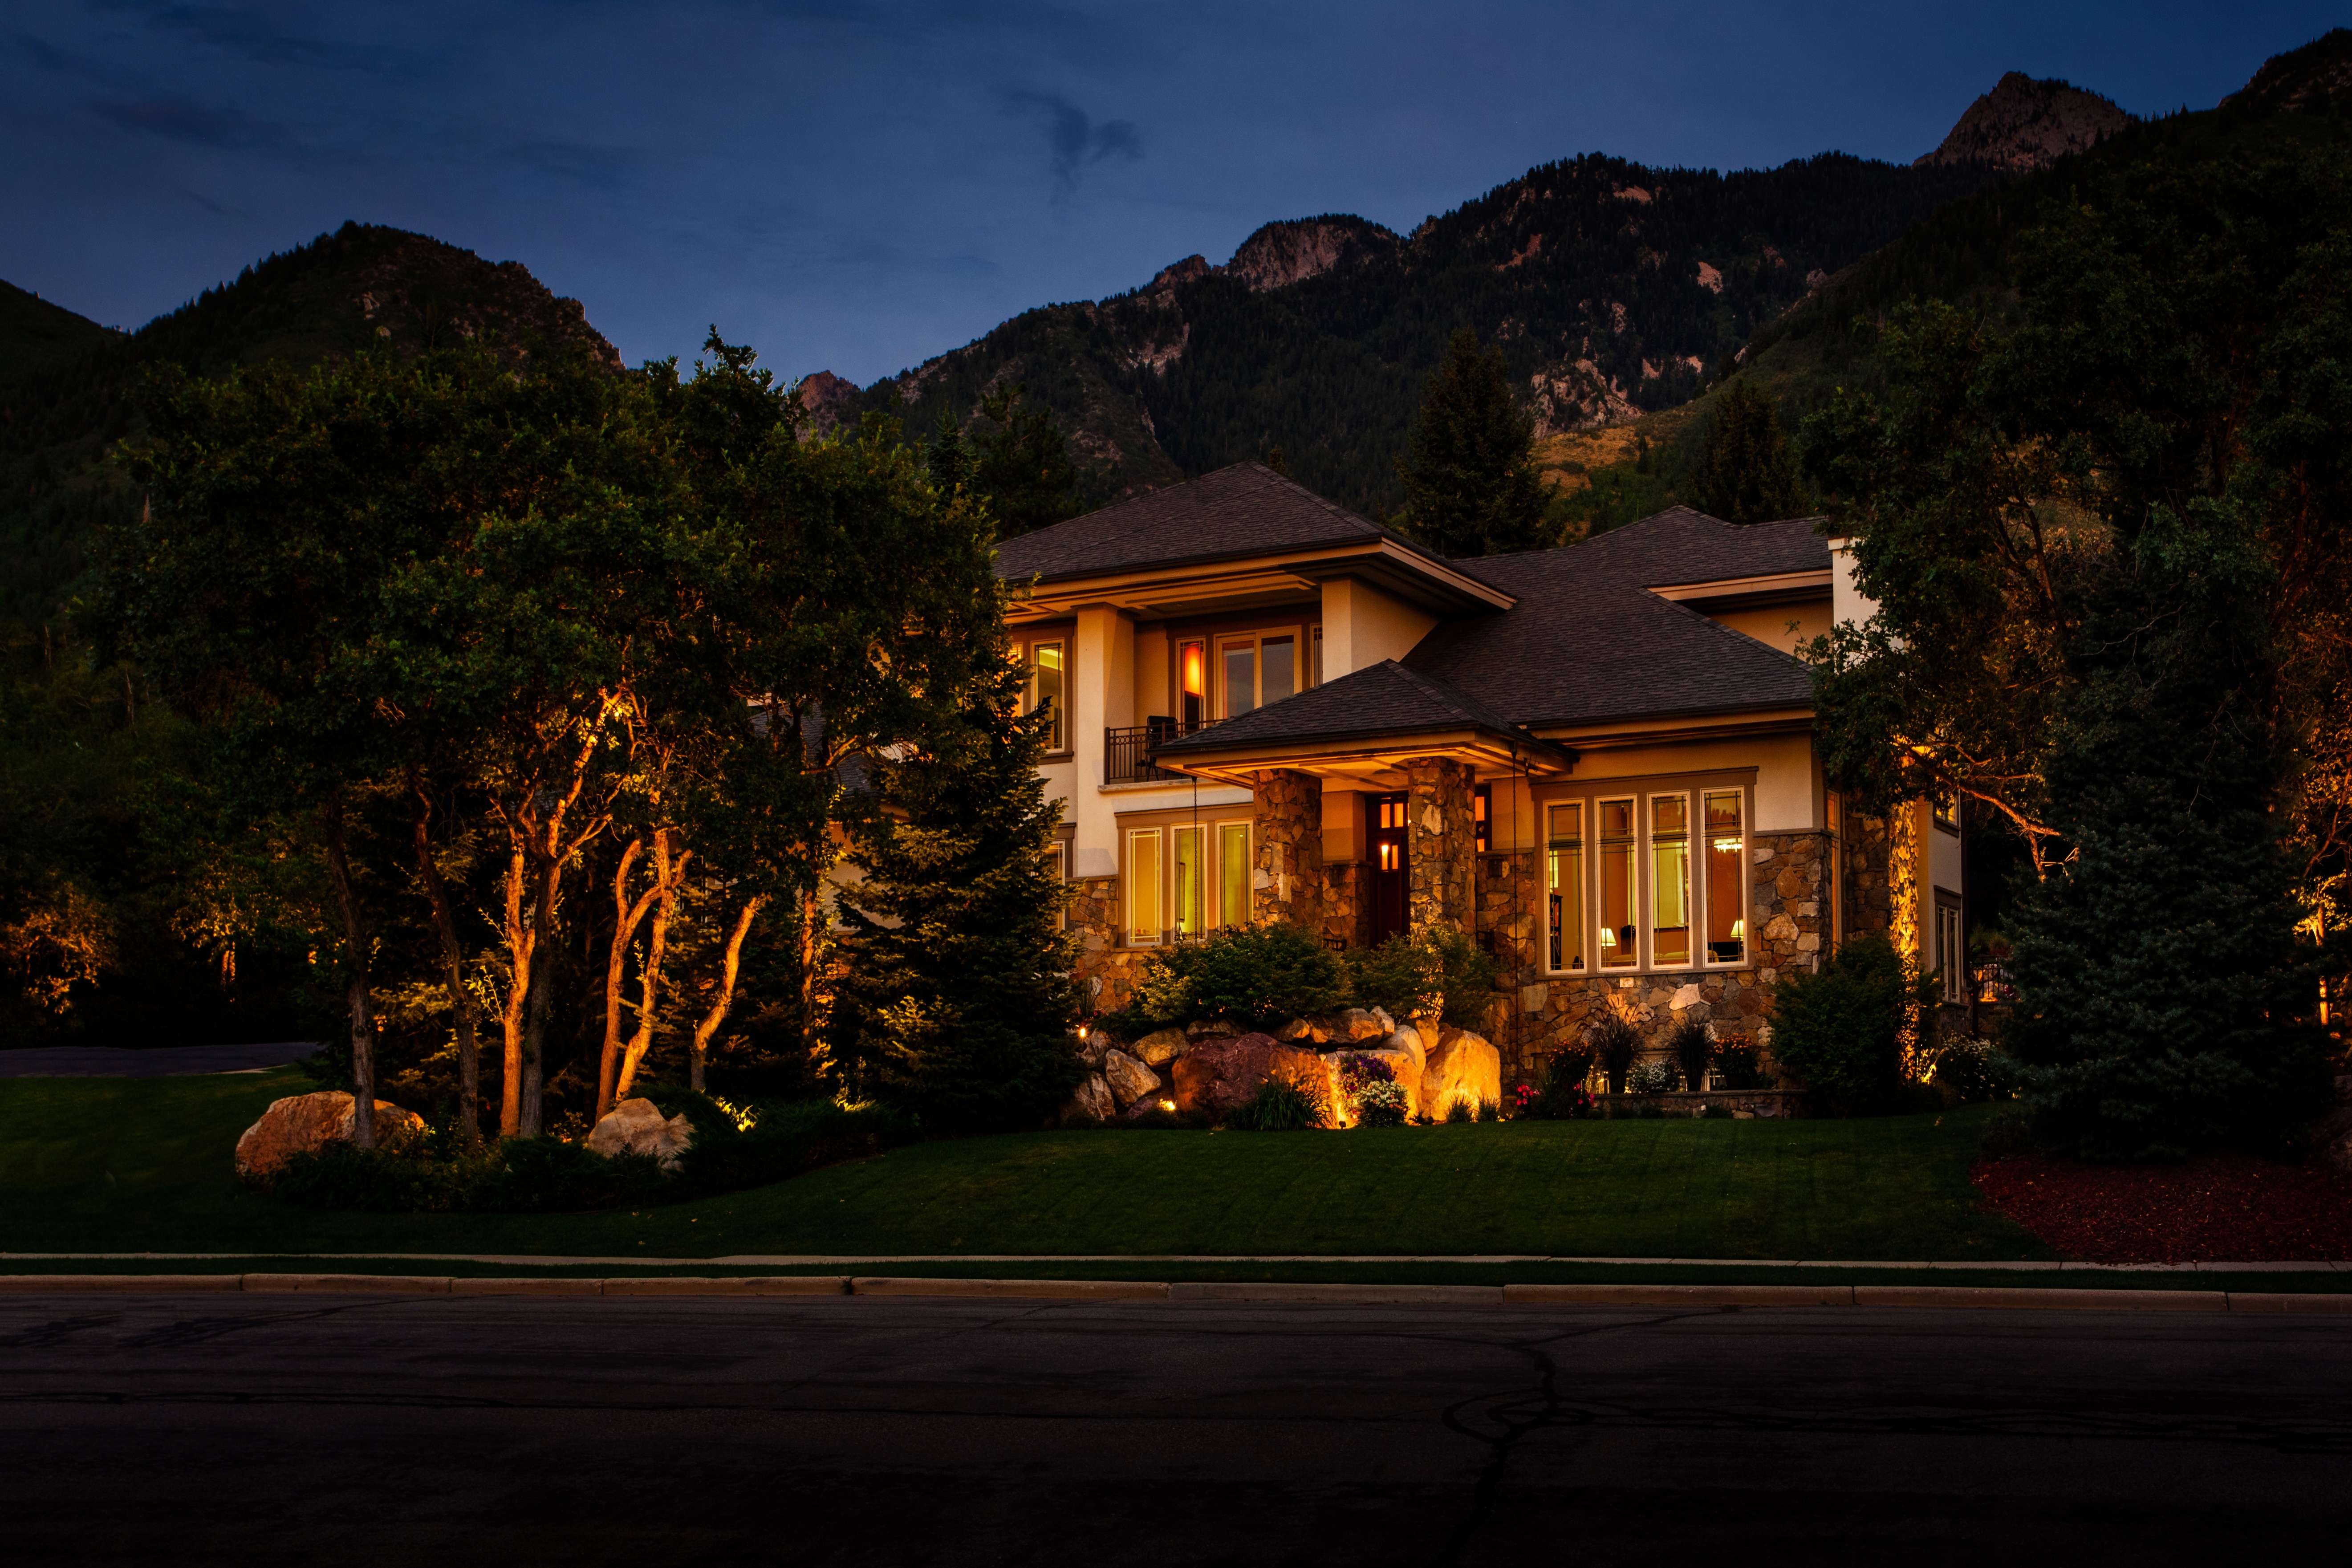 The bright ideas blog landscape lighting pro of utah landscape nothing makes out job come to life easier then when someone has already set the stage for a beautiful masterpiece to come together publicscrutiny Image collections